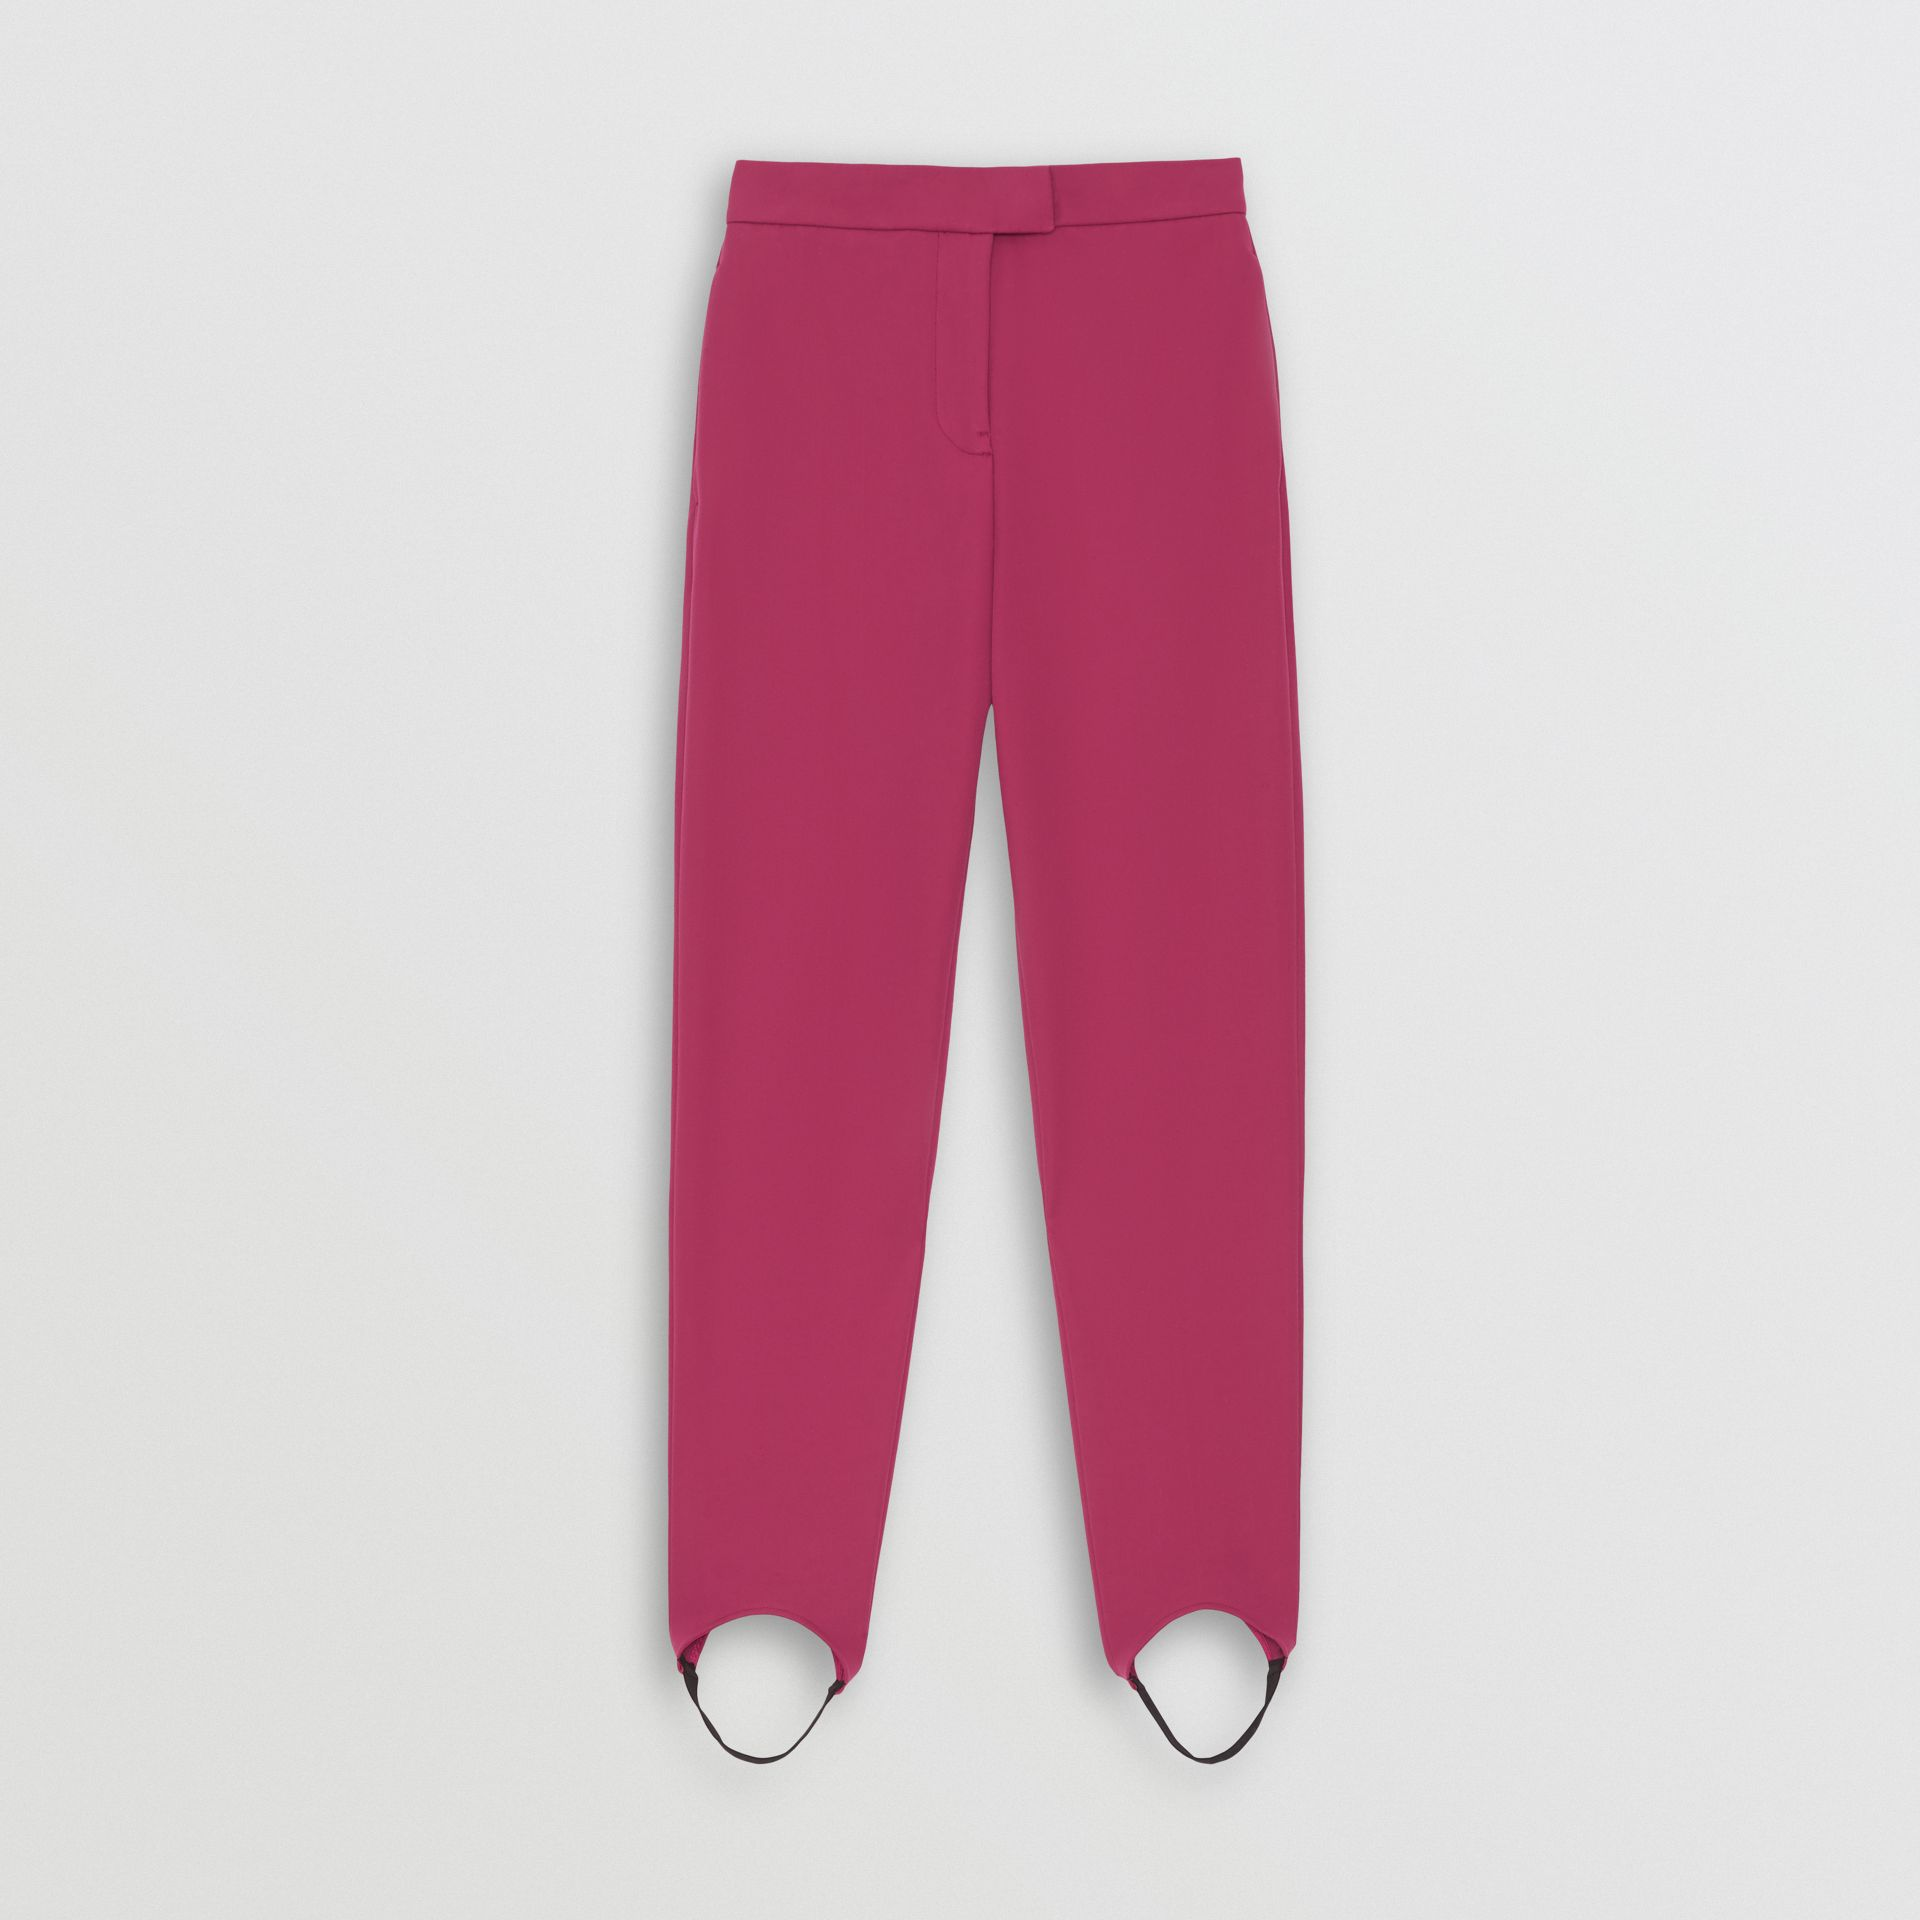 Cotton Blend Tailored Jodhpurs in Plum Pink - Women | Burberry - gallery image 3